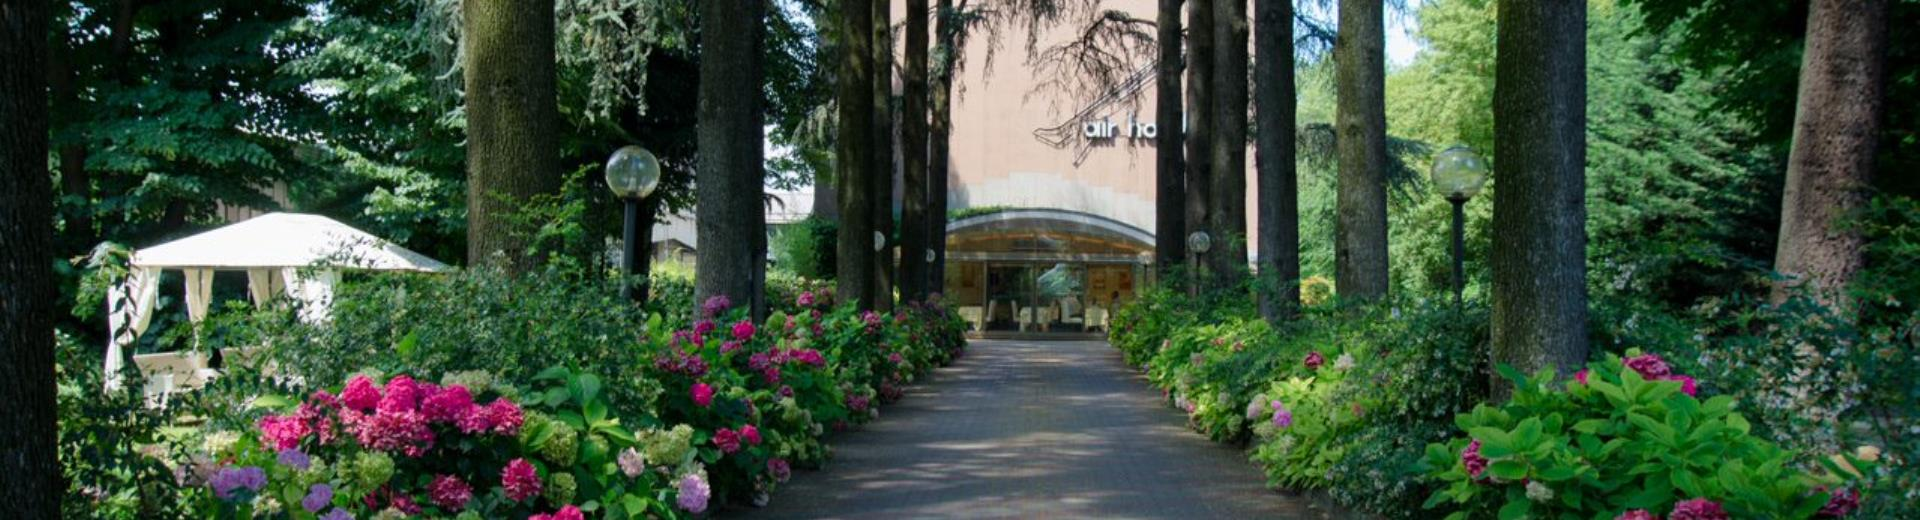 The BW Air Hotel Linate is just 500 metres from Milano Linate airport, in the countryside, for a stay of comfort and relaxation.